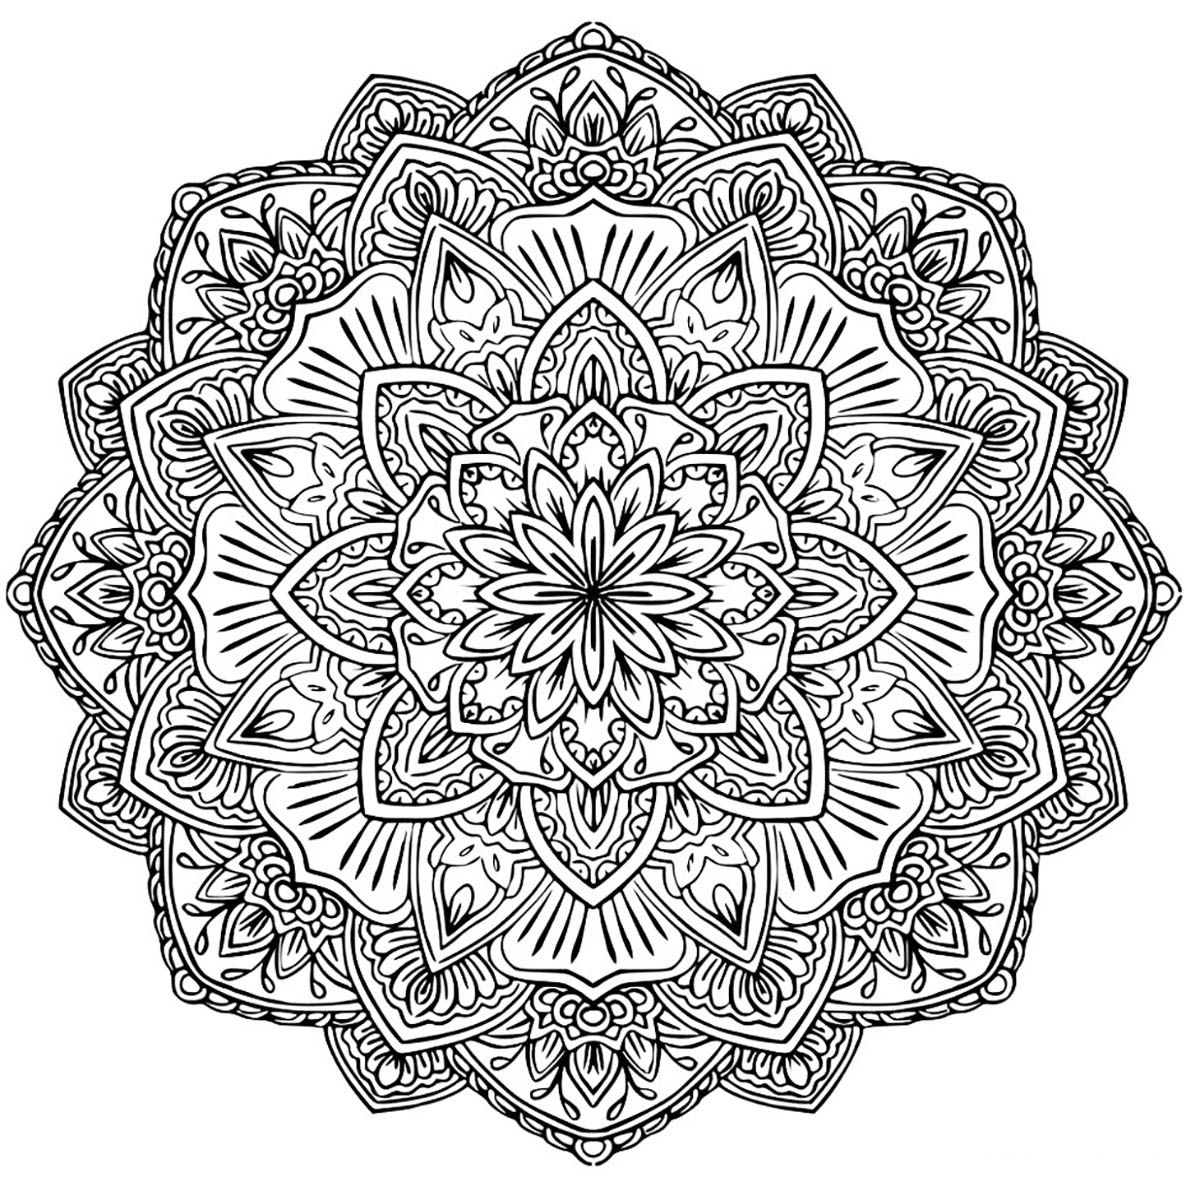 hard mandala coloring pages printable here is a nice variety of free printable coloring pages coloring printable hard pages mandala